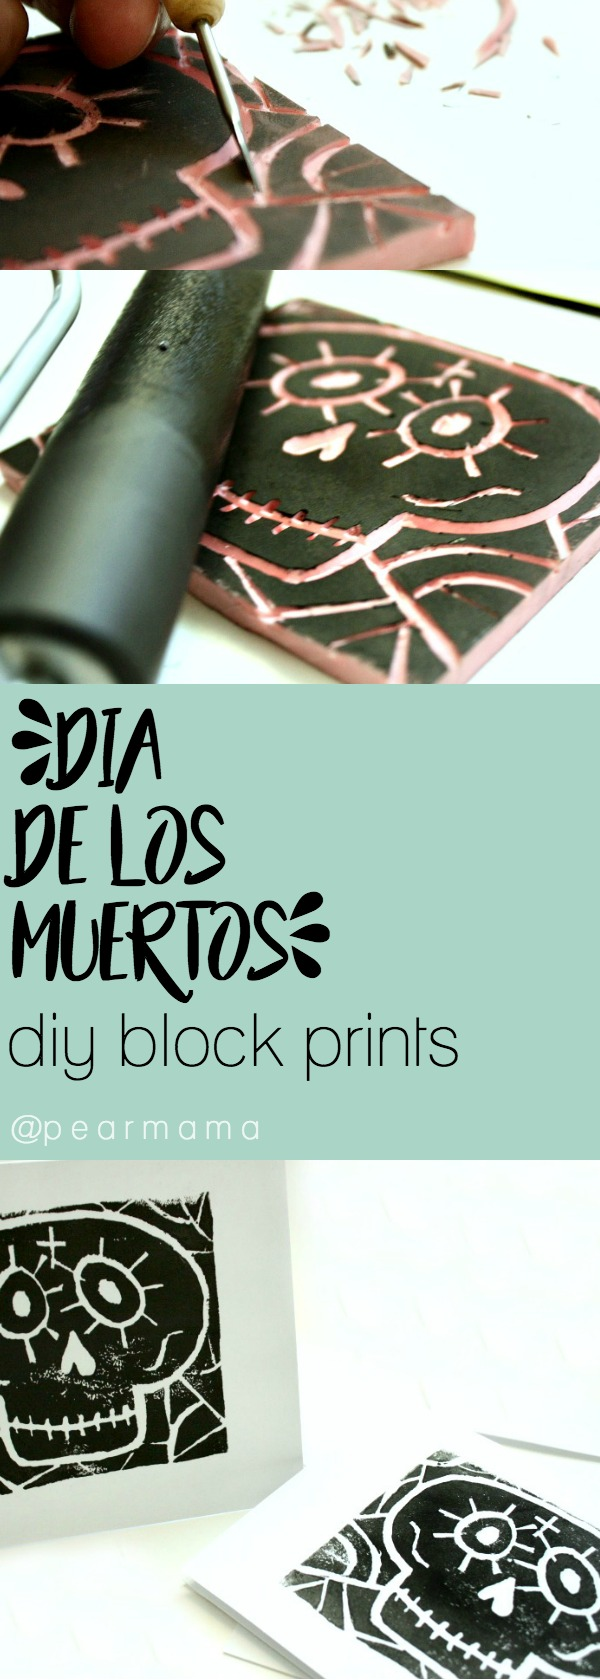 MAKE YOUR OWN BLOCK PRINTS FOR DIA DE LOS MUERTOS USING A SPEEDBALL CARVING BLOCK FOUND AT YOUR LOCAL ARTS AND CRAFTS STORE.